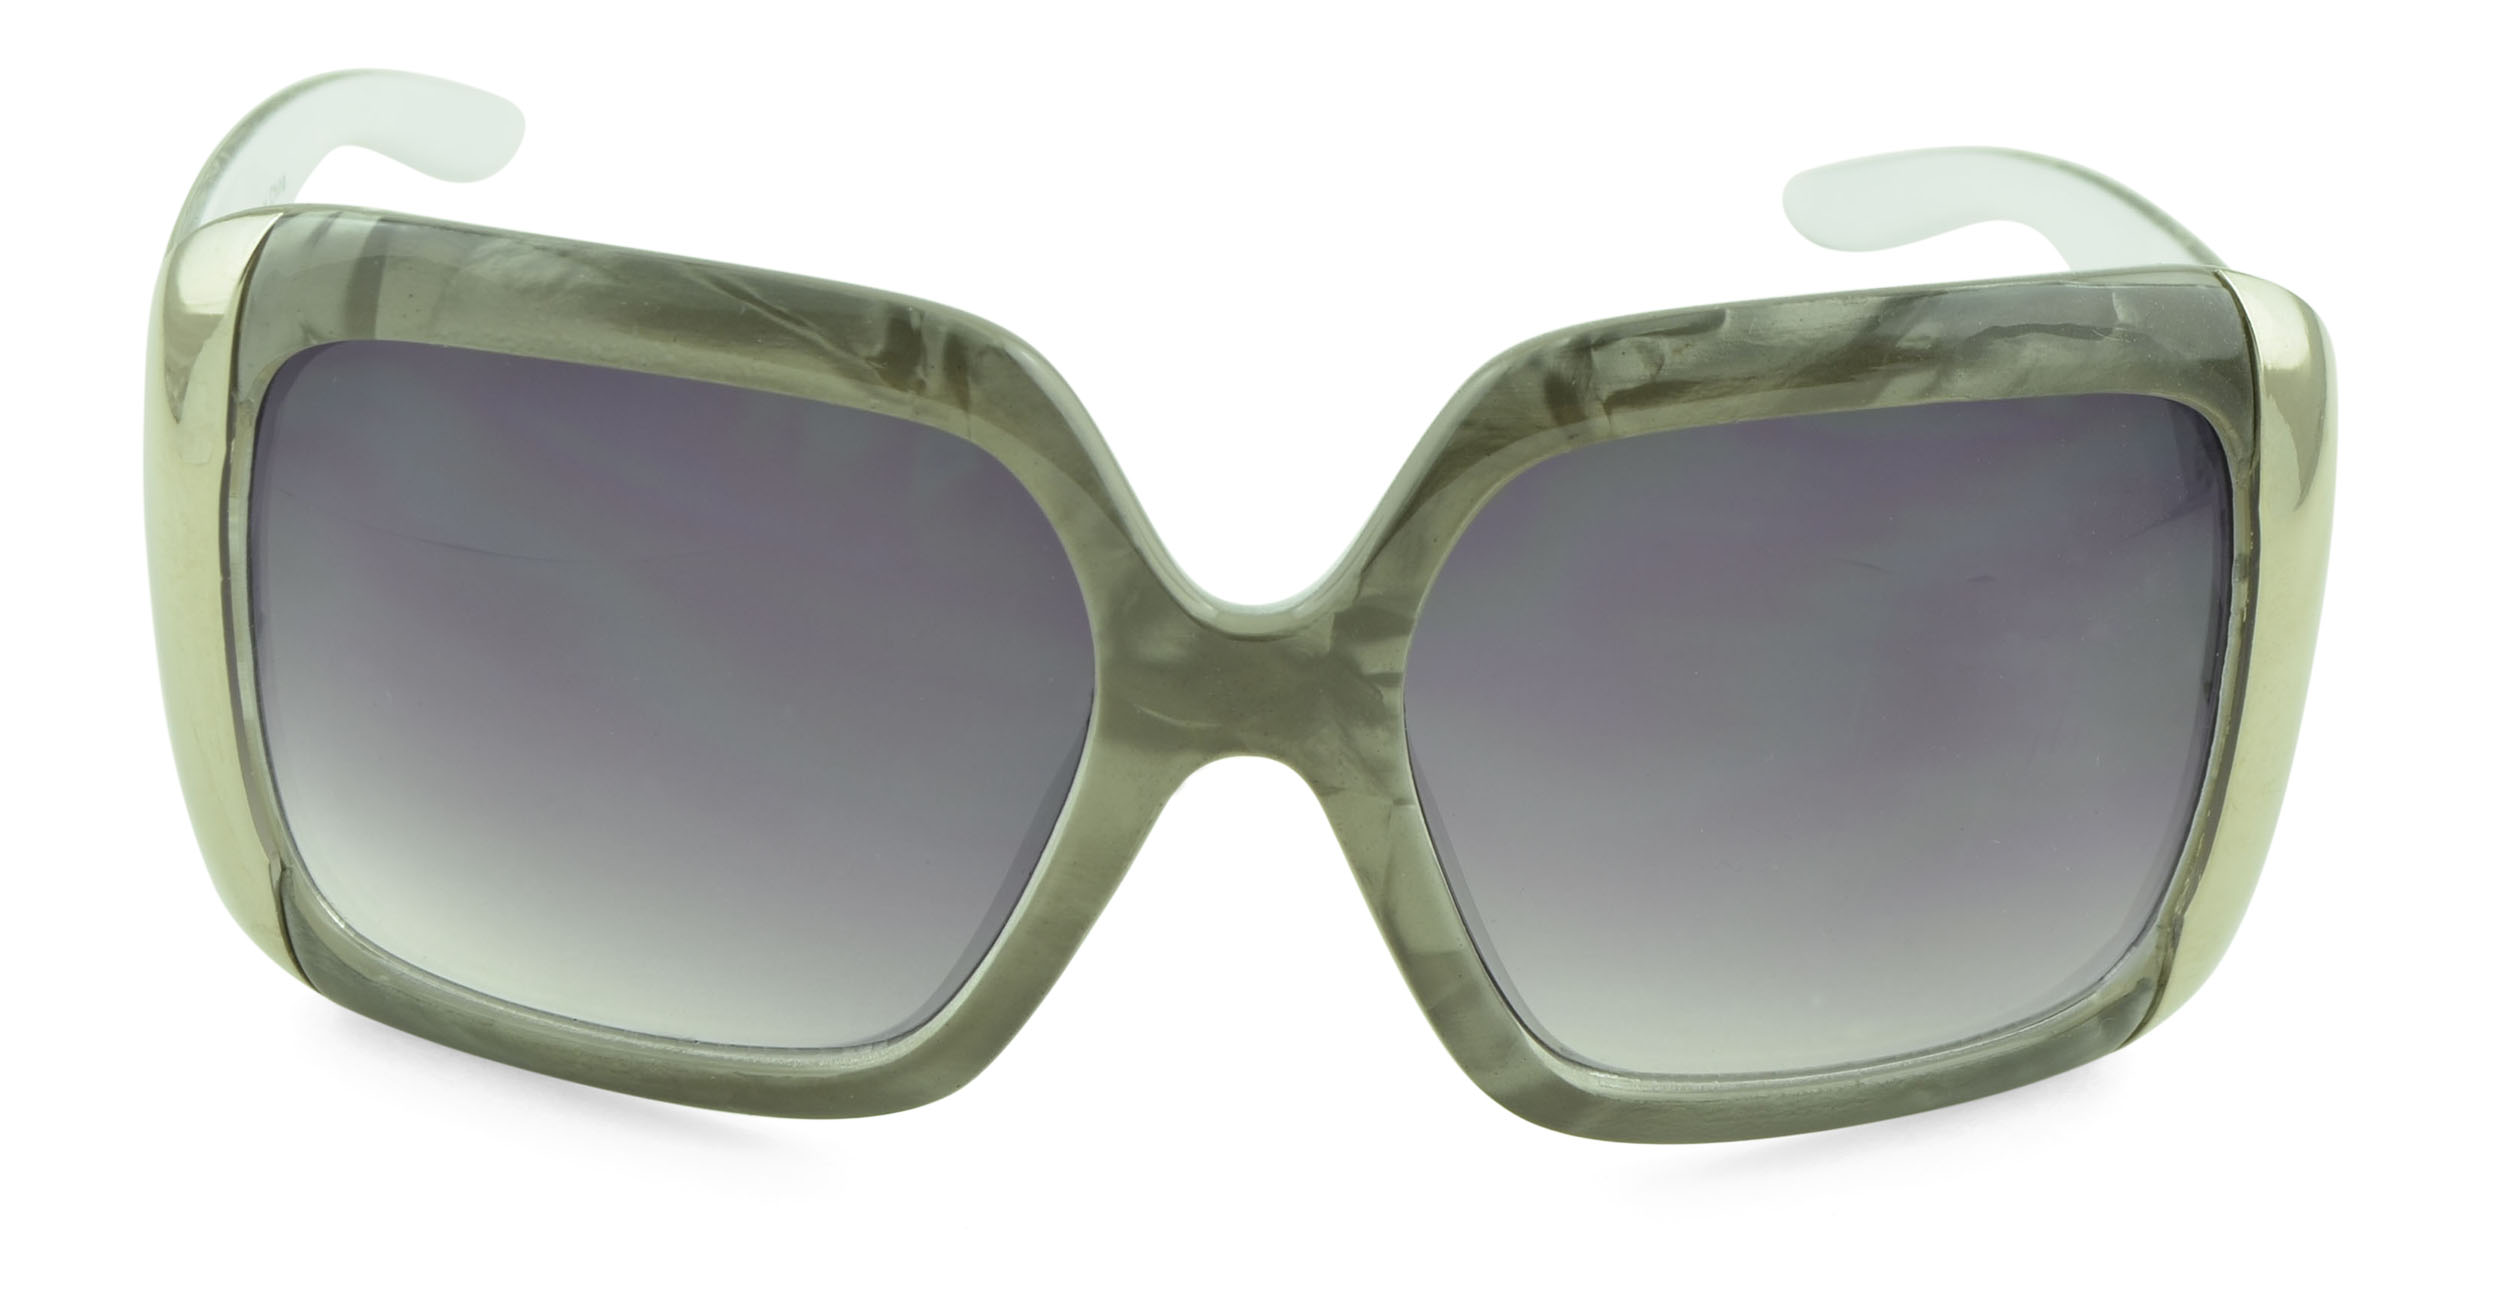 Belle Donne- Oversized Women's Luxory Celebrity Fashion Sunglasses - Clear Butterfly Oversized Sunglasses for Women and Girls - Trendy Ladies Sunglass